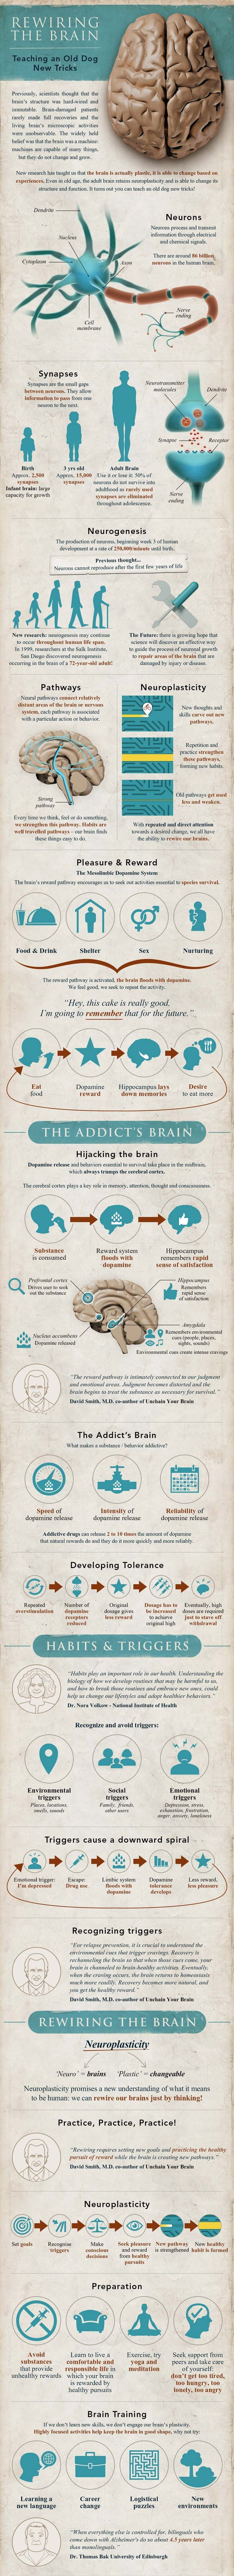 Introduction to Neuroplasticity and Cognitive Therapy - Imgur